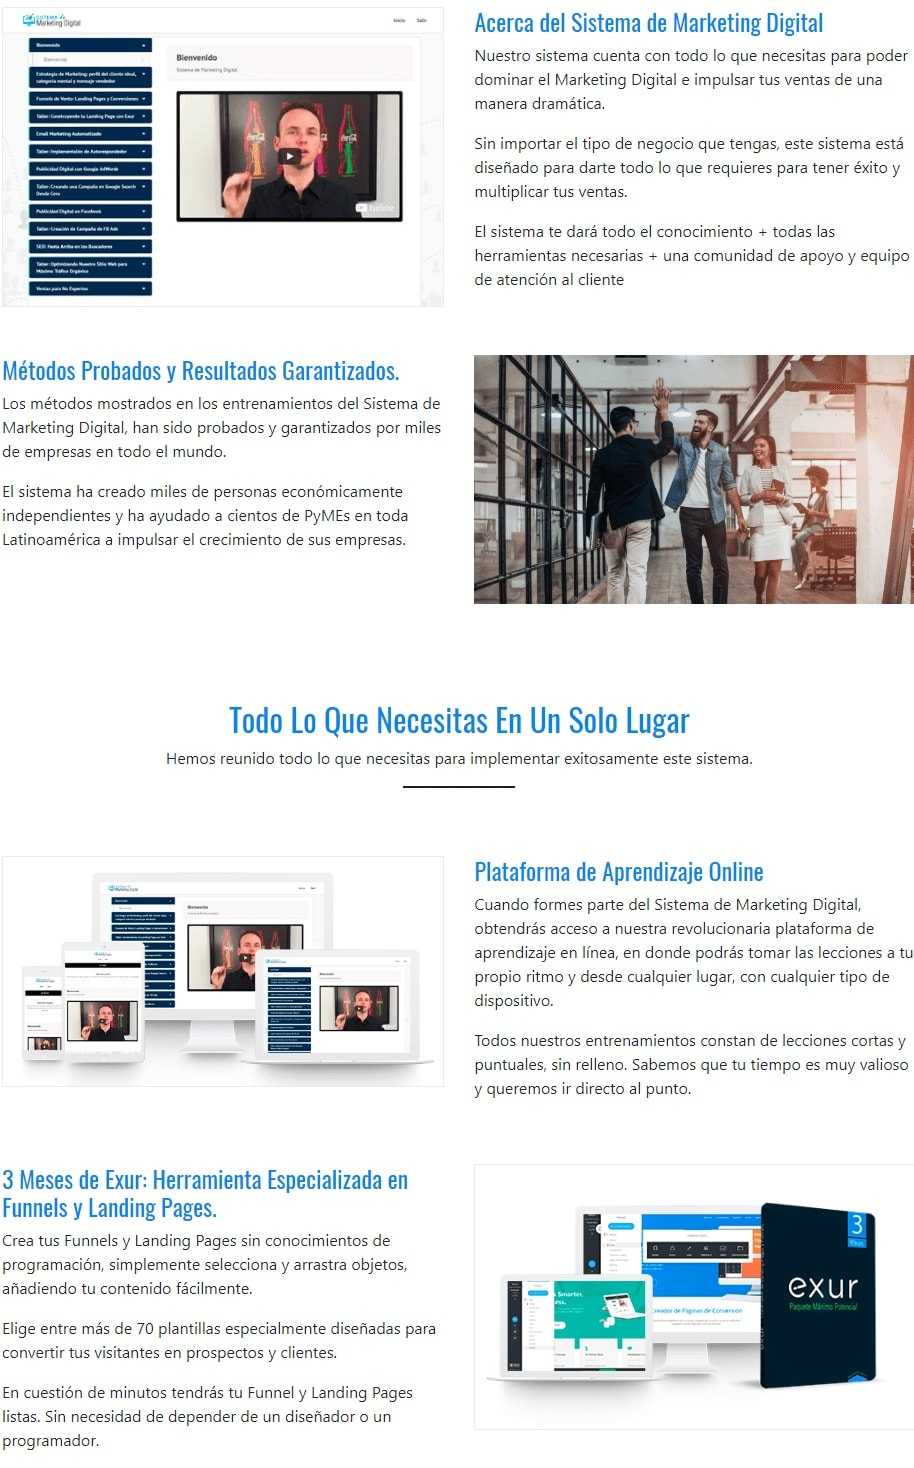 emprende, emprendedores, marketing digital, digital marketing, market, digital market, redes sociales, marketing redes sociales, estrategias redes sociales, funnels, curso de marketing digital, cursos de marketing digital, landing pages, agencia de marketing digital, que es marketing digital, marketing digital pdf, como hacer marketing digital, como funciona el marketing digital, montar un negocio online,